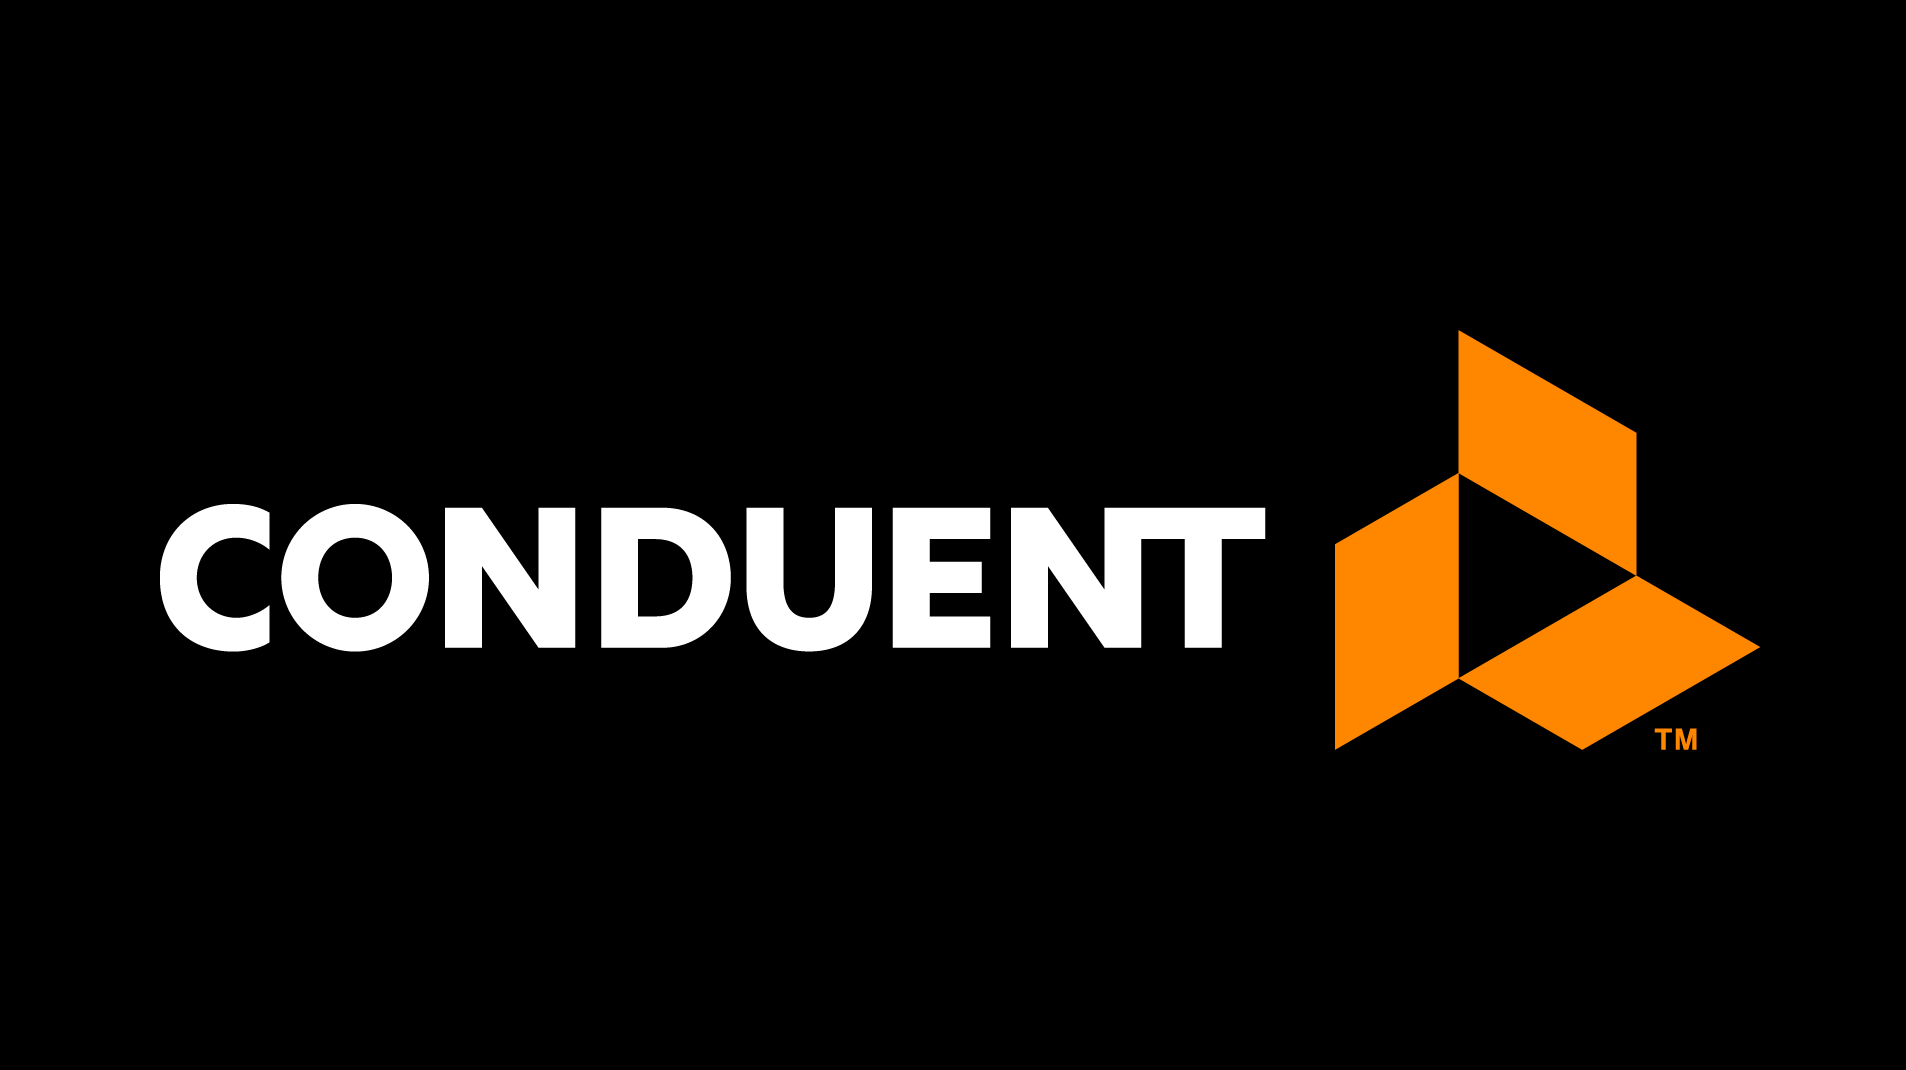 Conduent rings the NYSE Opening Bell on Livestream